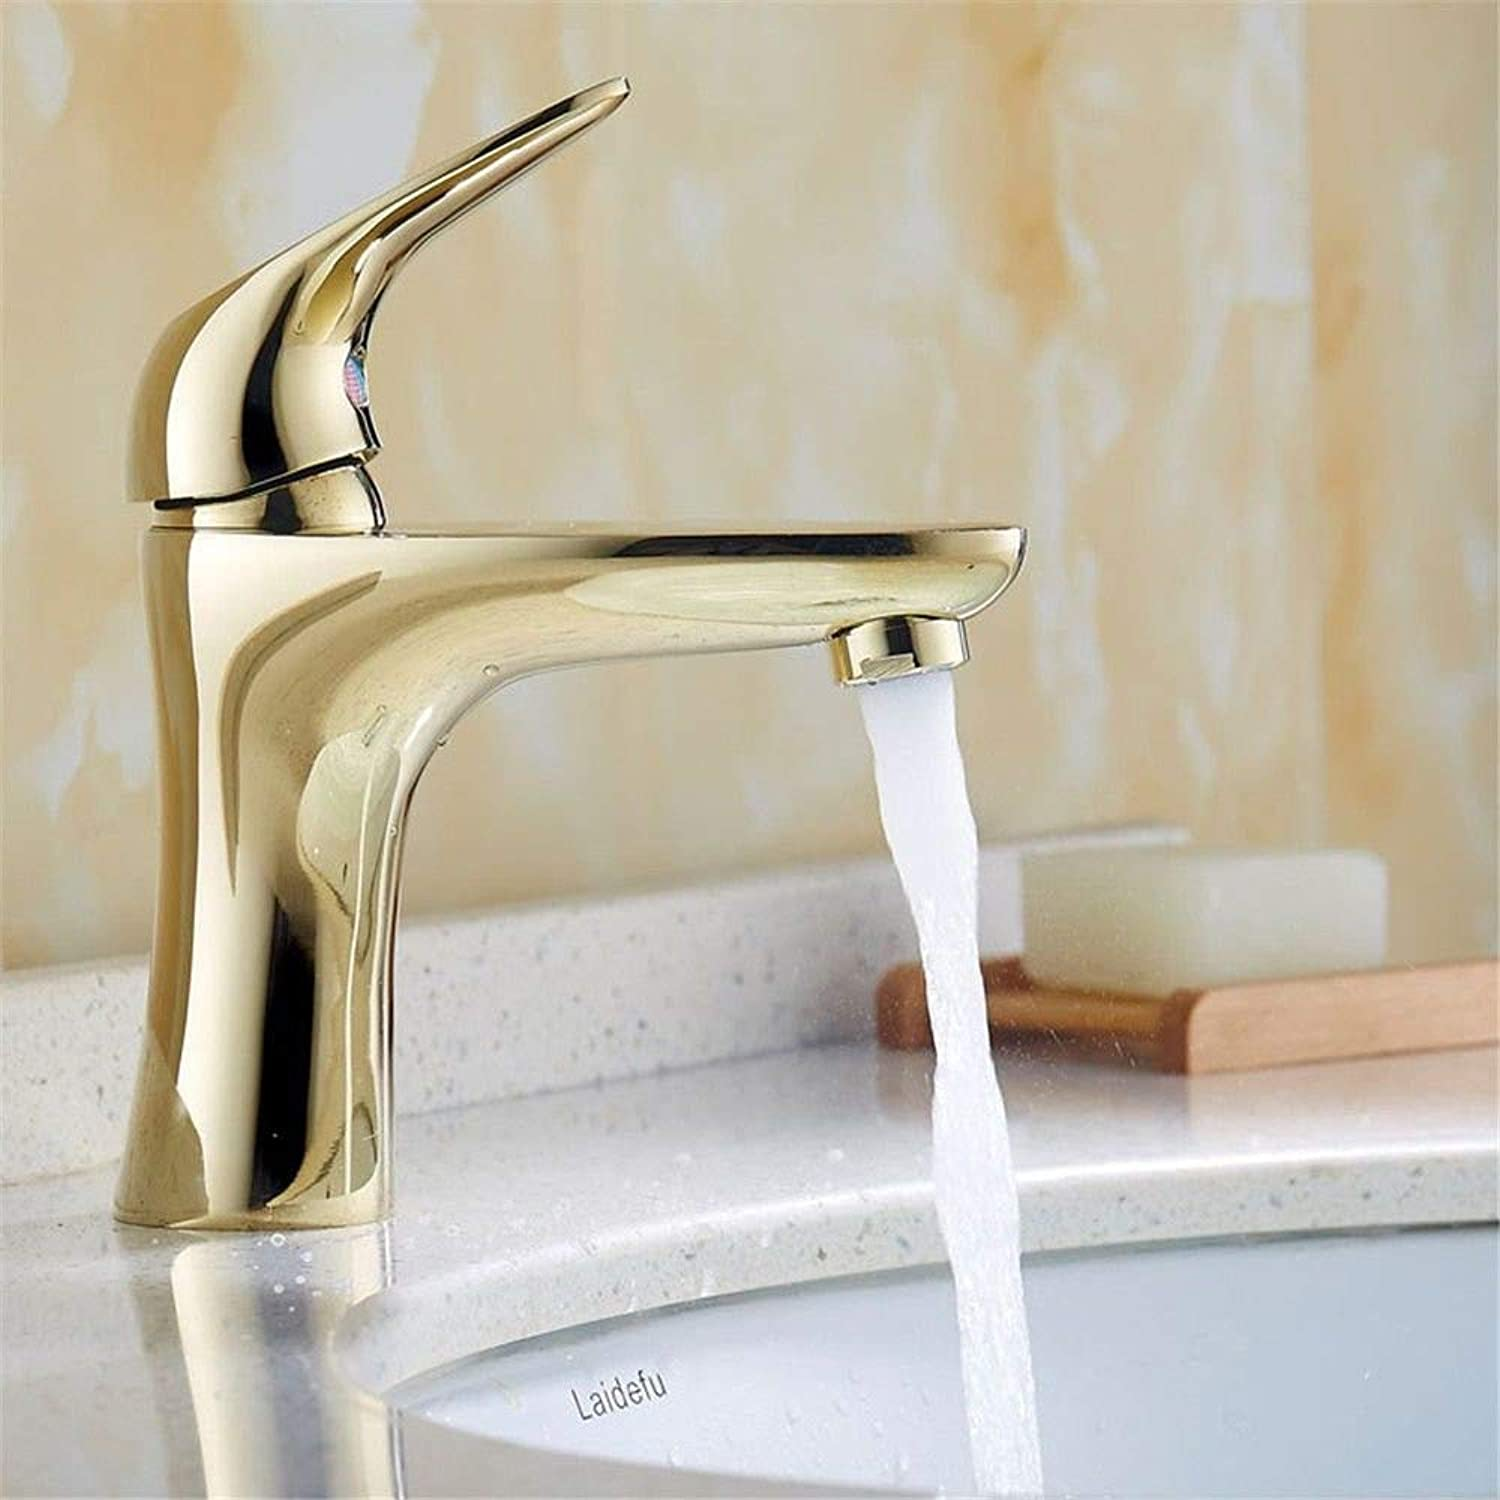 Bathroom Sink Tap Retro Brass golden Single Lever 1 Hole Ceramic Valve Hot and Cold Water Single Lever Sink Tap for Bathroom Faucet